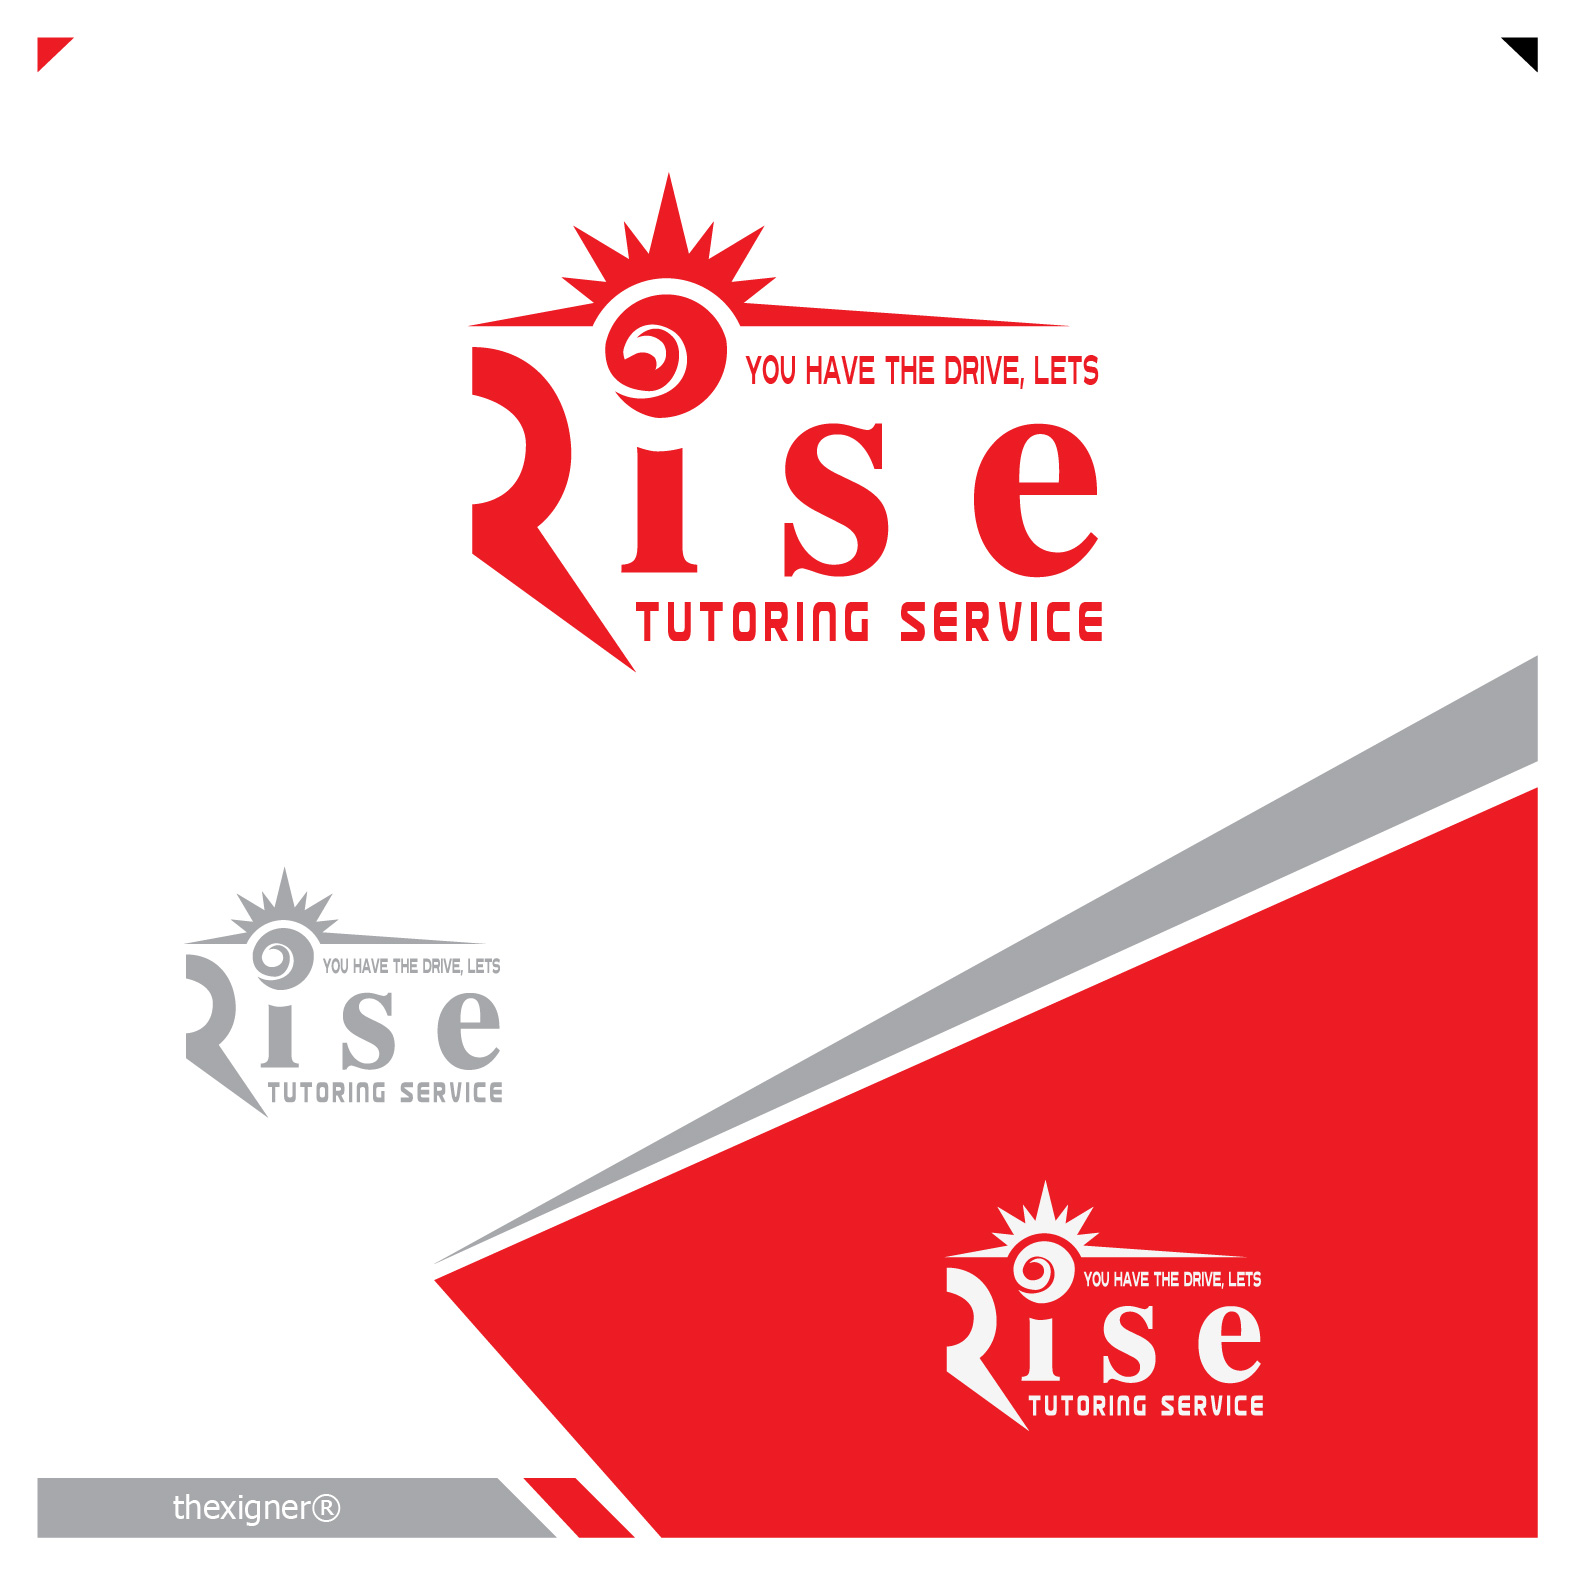 Logo Design by lagalag - Entry No. 118 in the Logo Design Contest Imaginative Logo Design for Rise Tutoring Service.